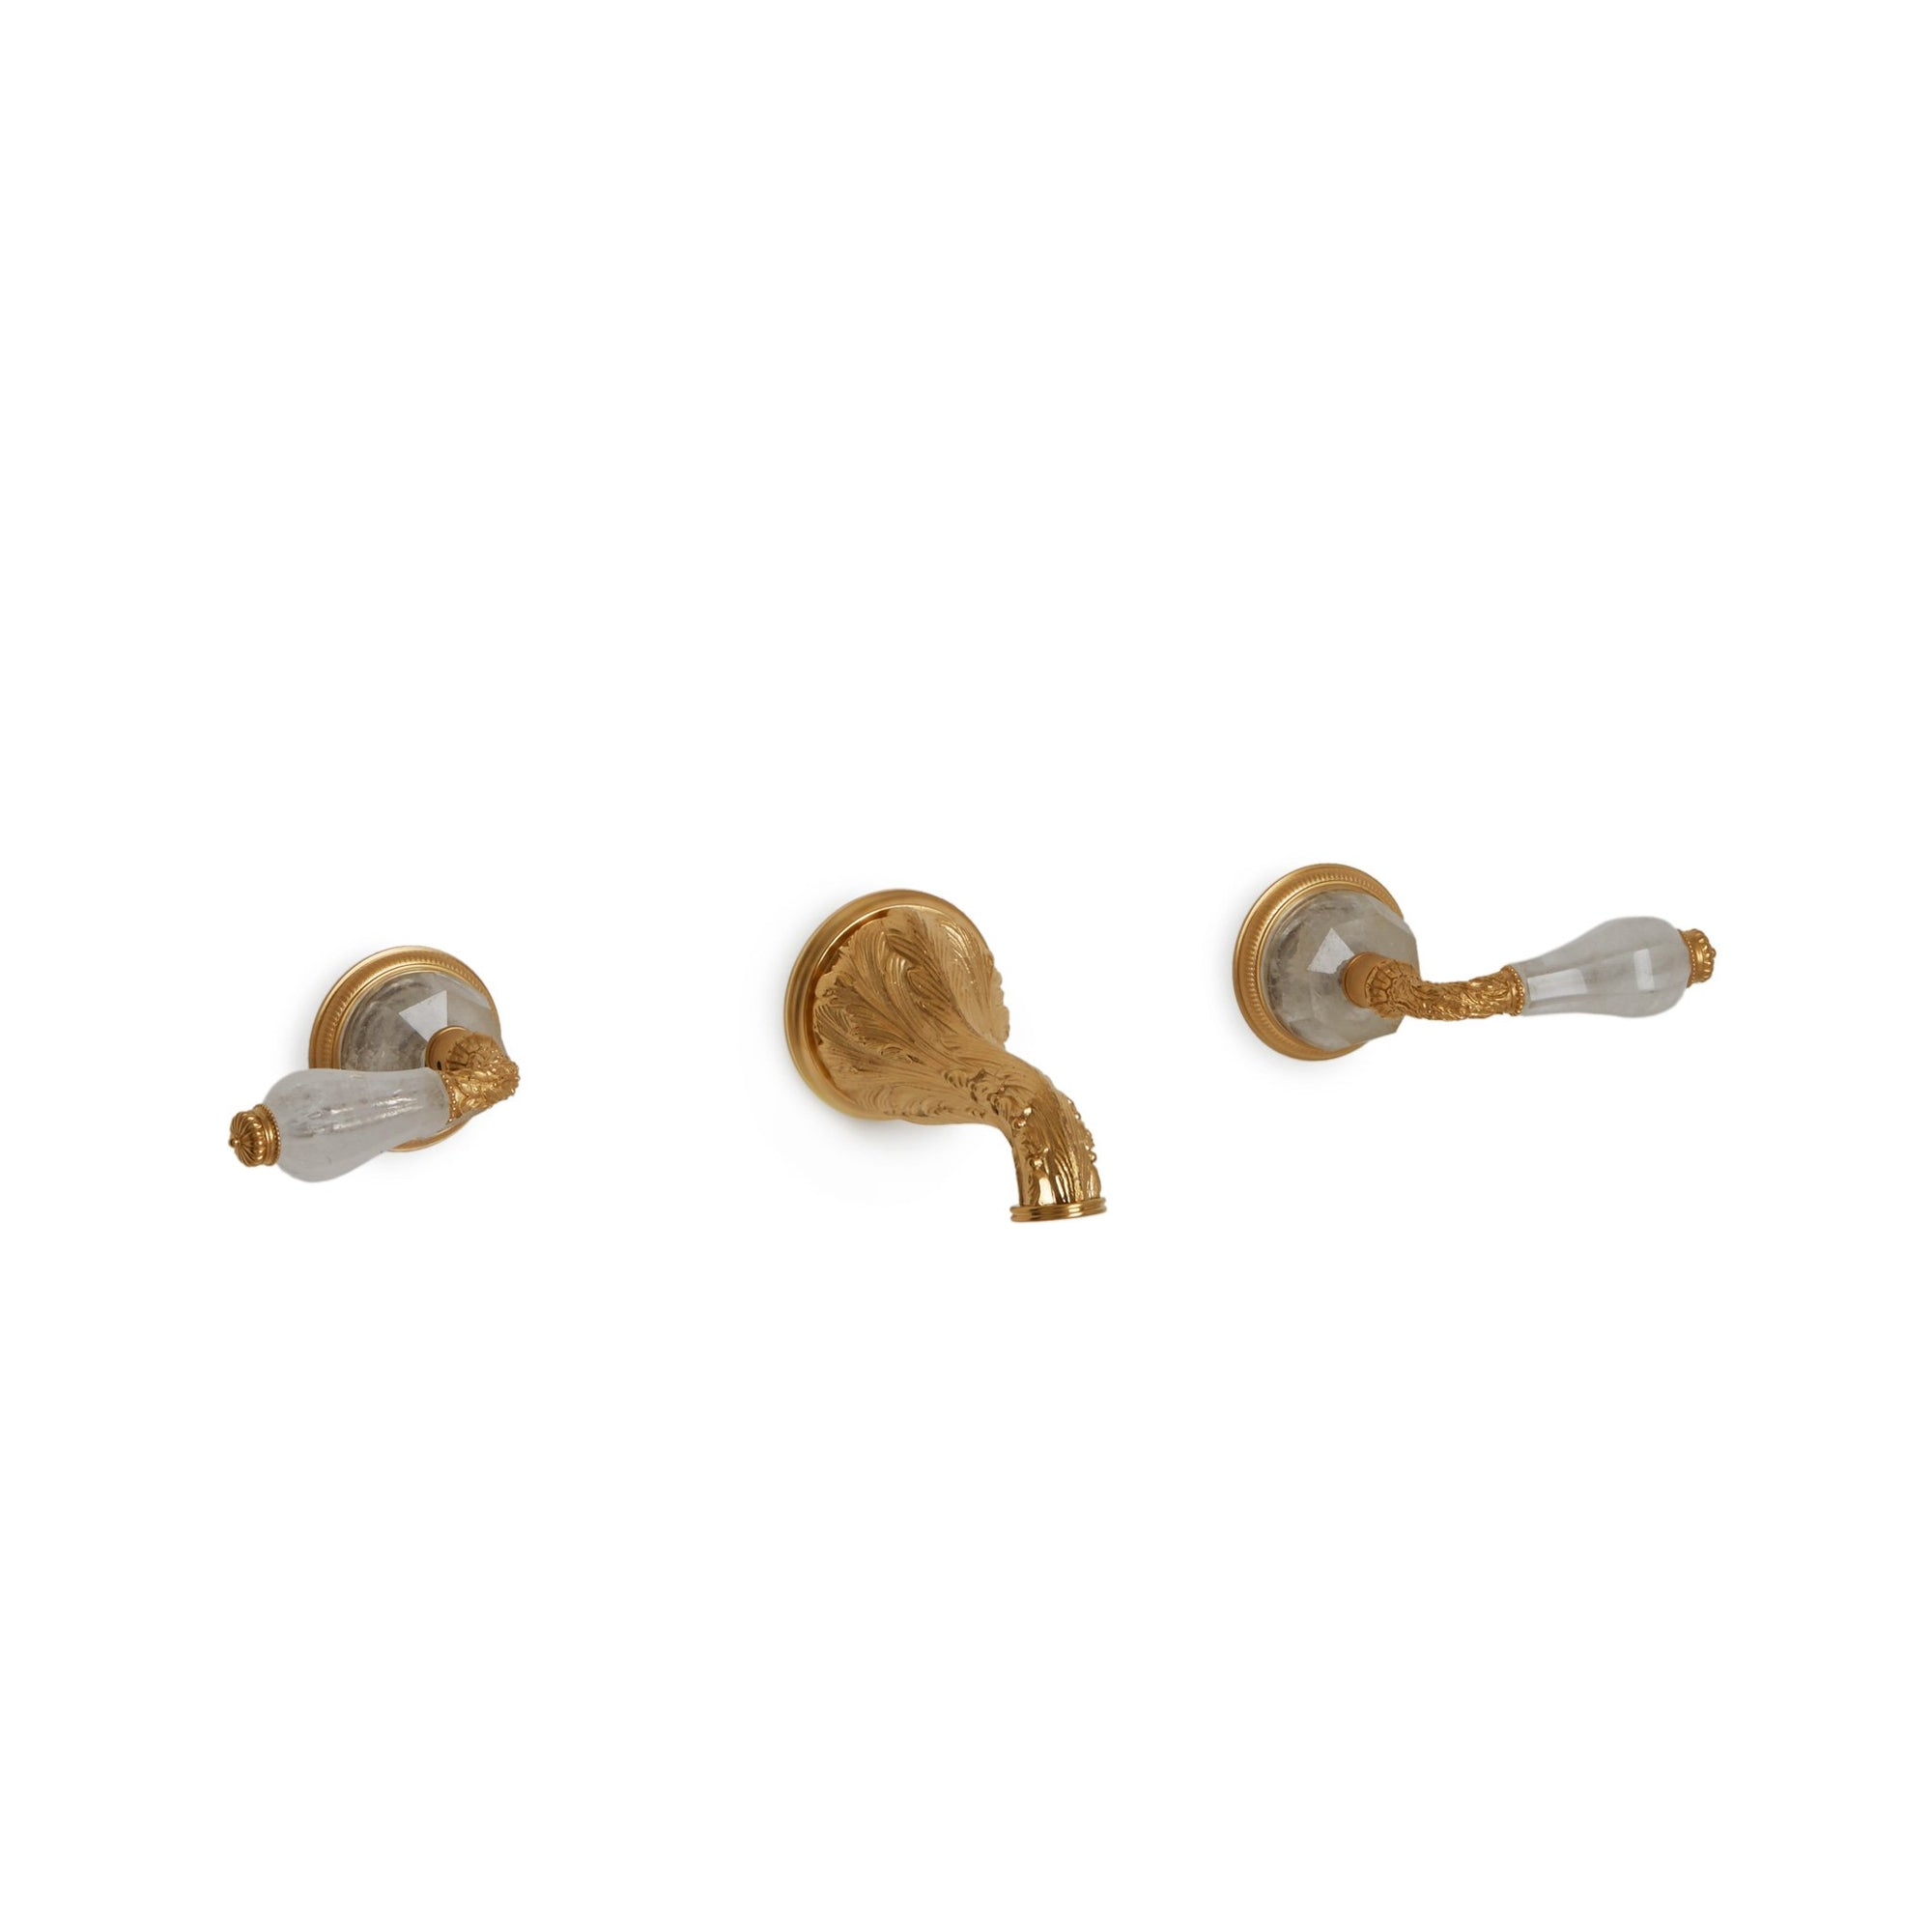 1030WBS819-RKCR-GP Sherle Wagner International Semiprecious Knurled Knob Wall Mount Faucet Set in Gold Plate metal finish with Rock Crystal inserts